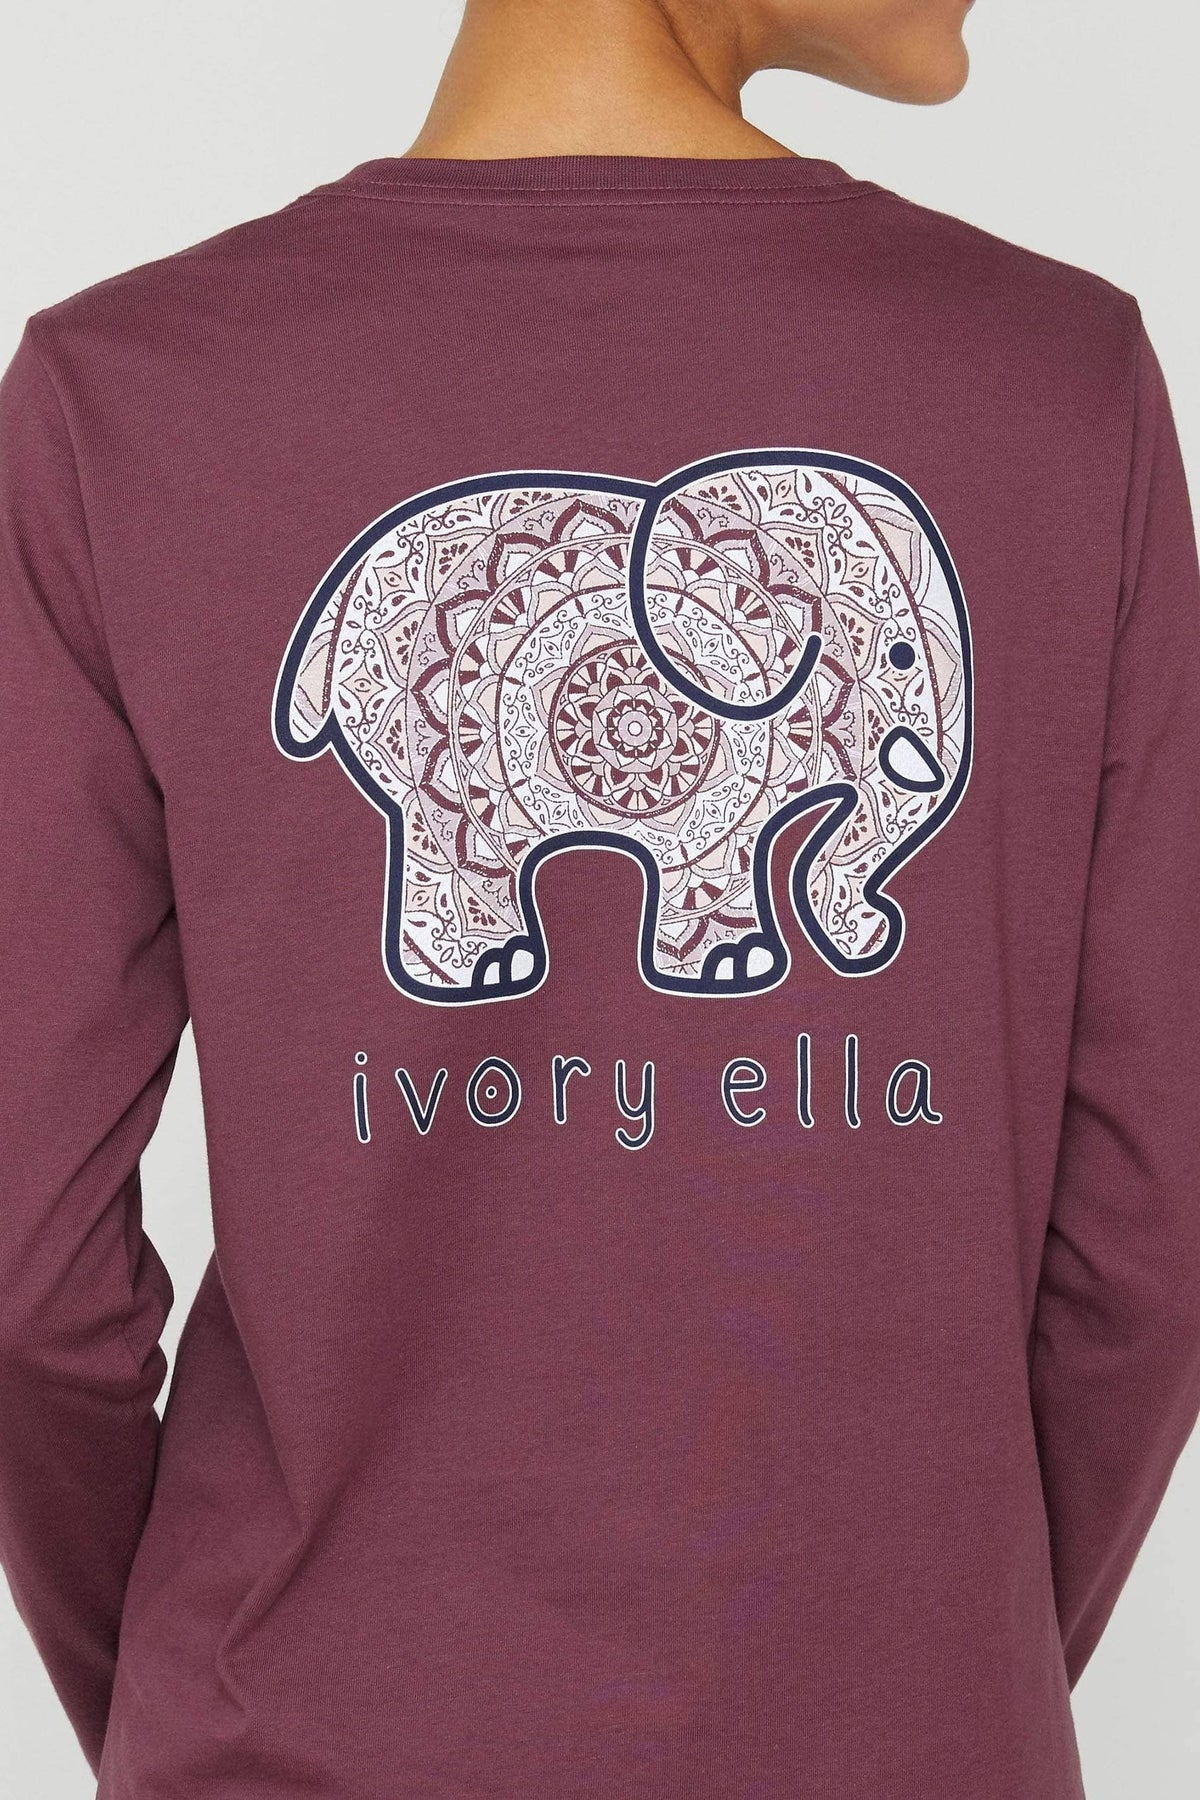 Ivory Ella Women's Long Sleeve Shirts Eggplant Mystical Mandala Long Sleeve Ella Tee